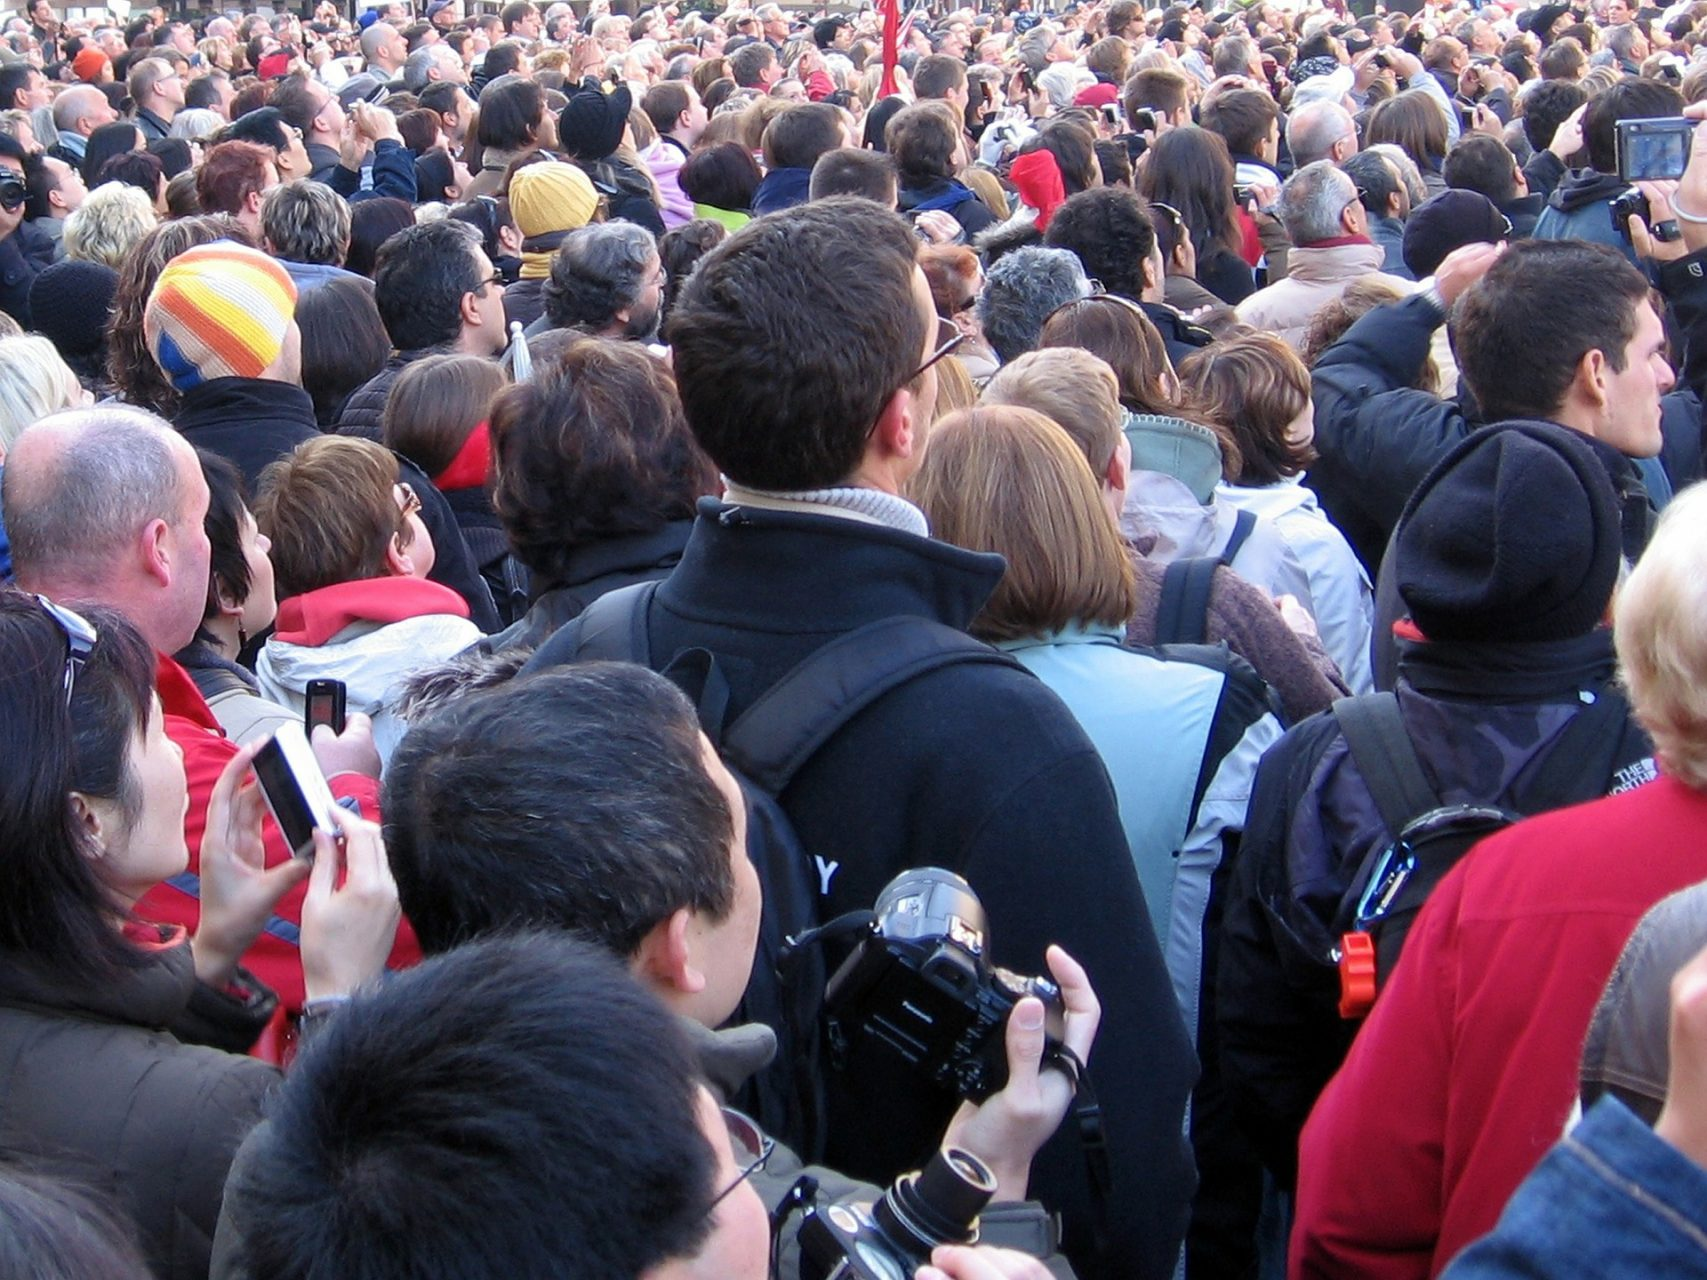 Image of a crowd scene